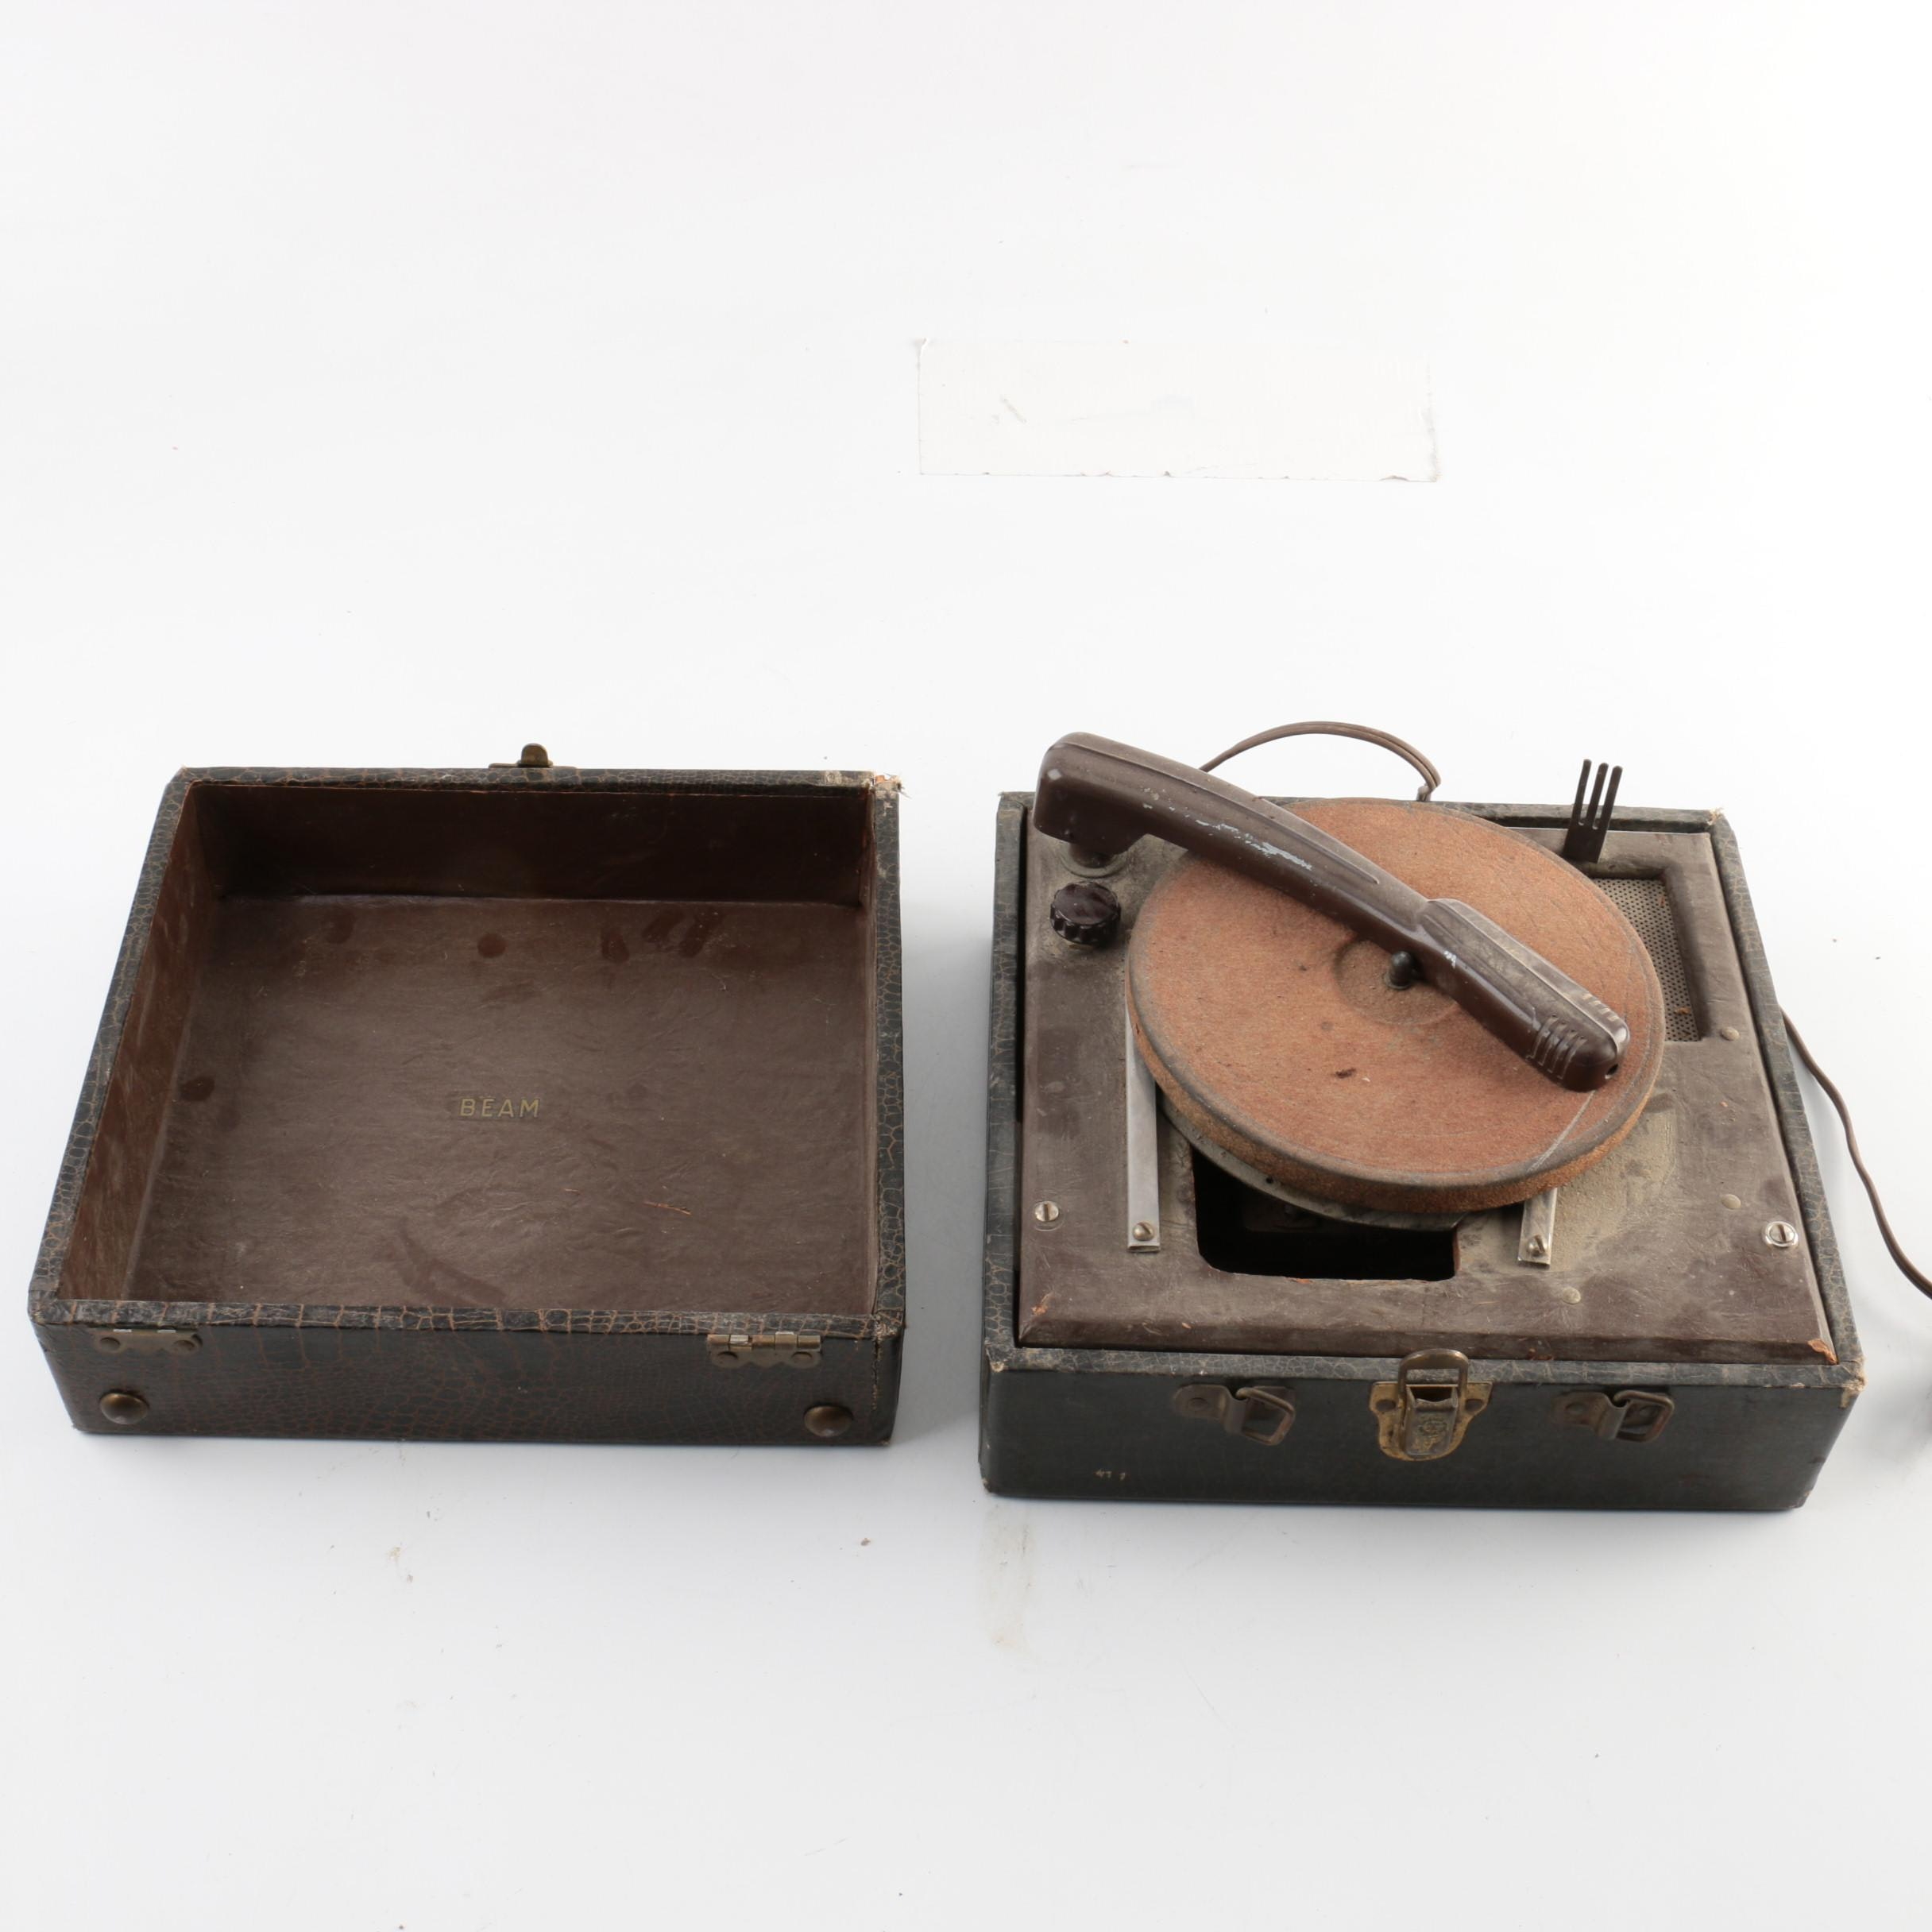 Vintage Beam Art Deco Suitcase-Style Record Player